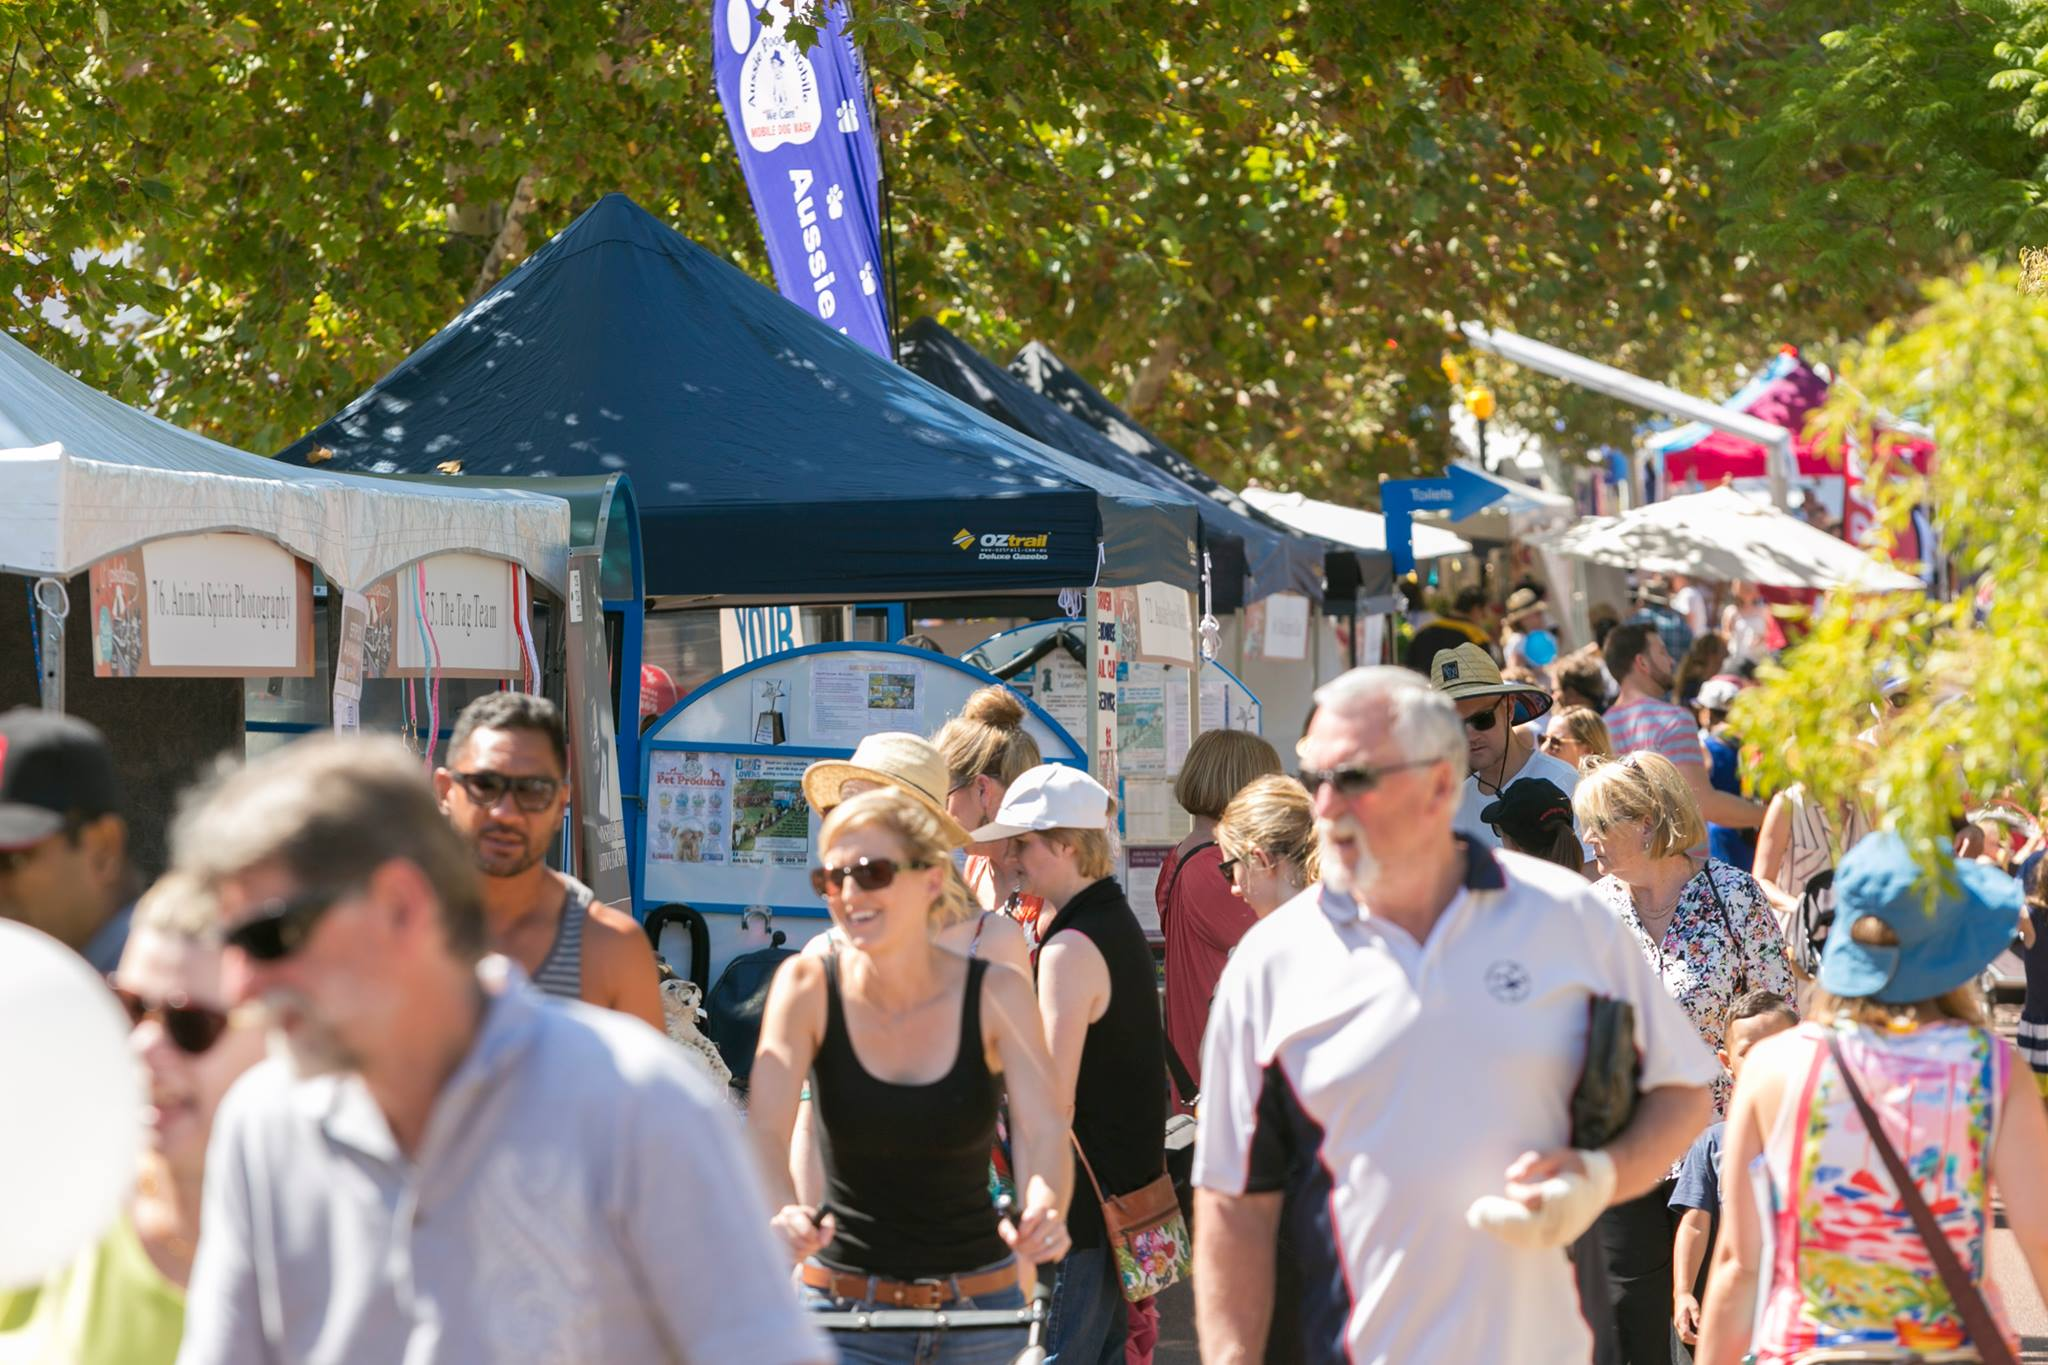 City of South Perth taking expressions of interest in Angelo Street Marketplace